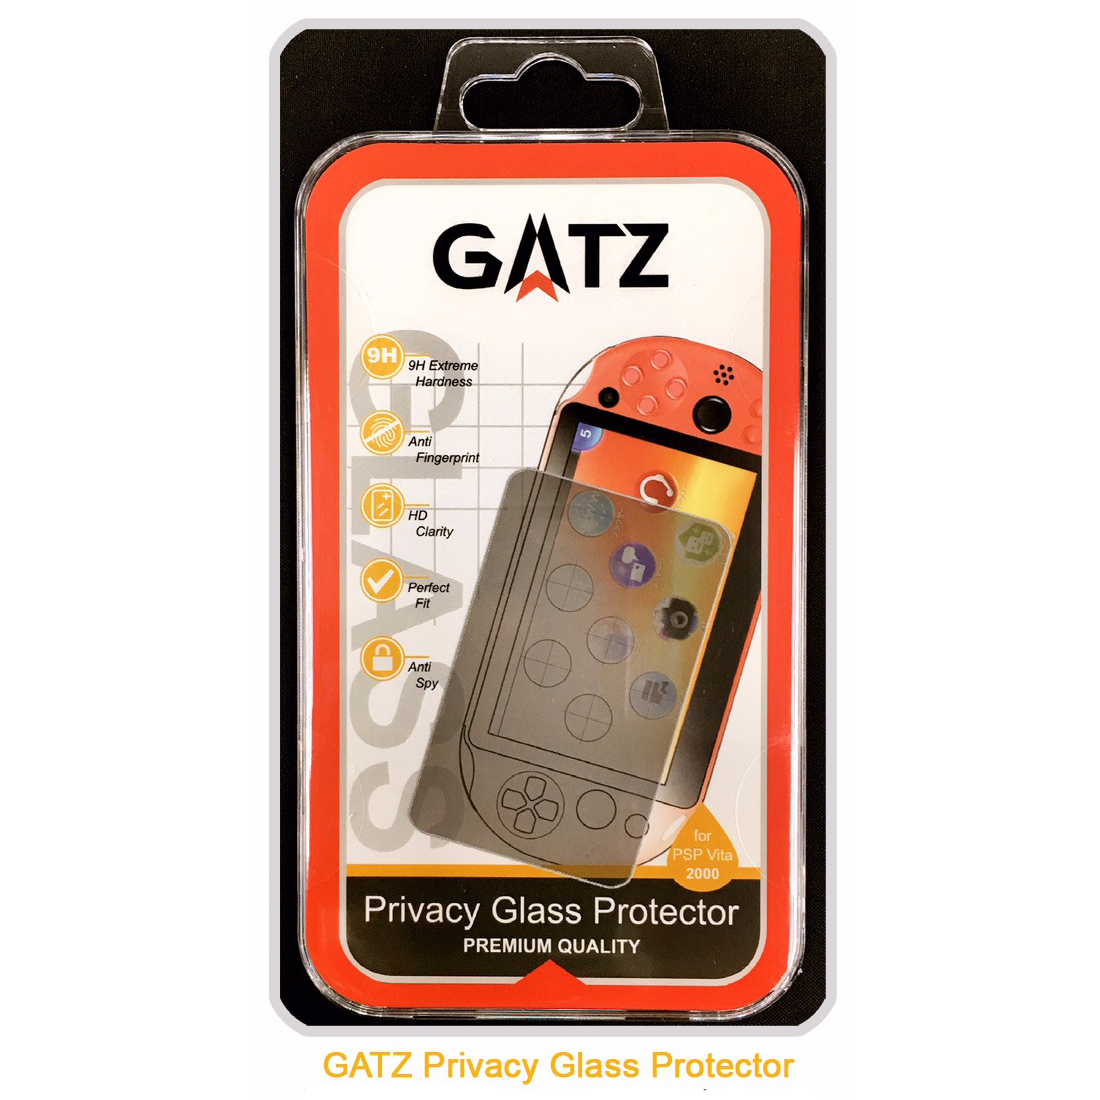 Gatz Premium Quality Privacy Tempered Glass Protector for PS Vita 2006 Series